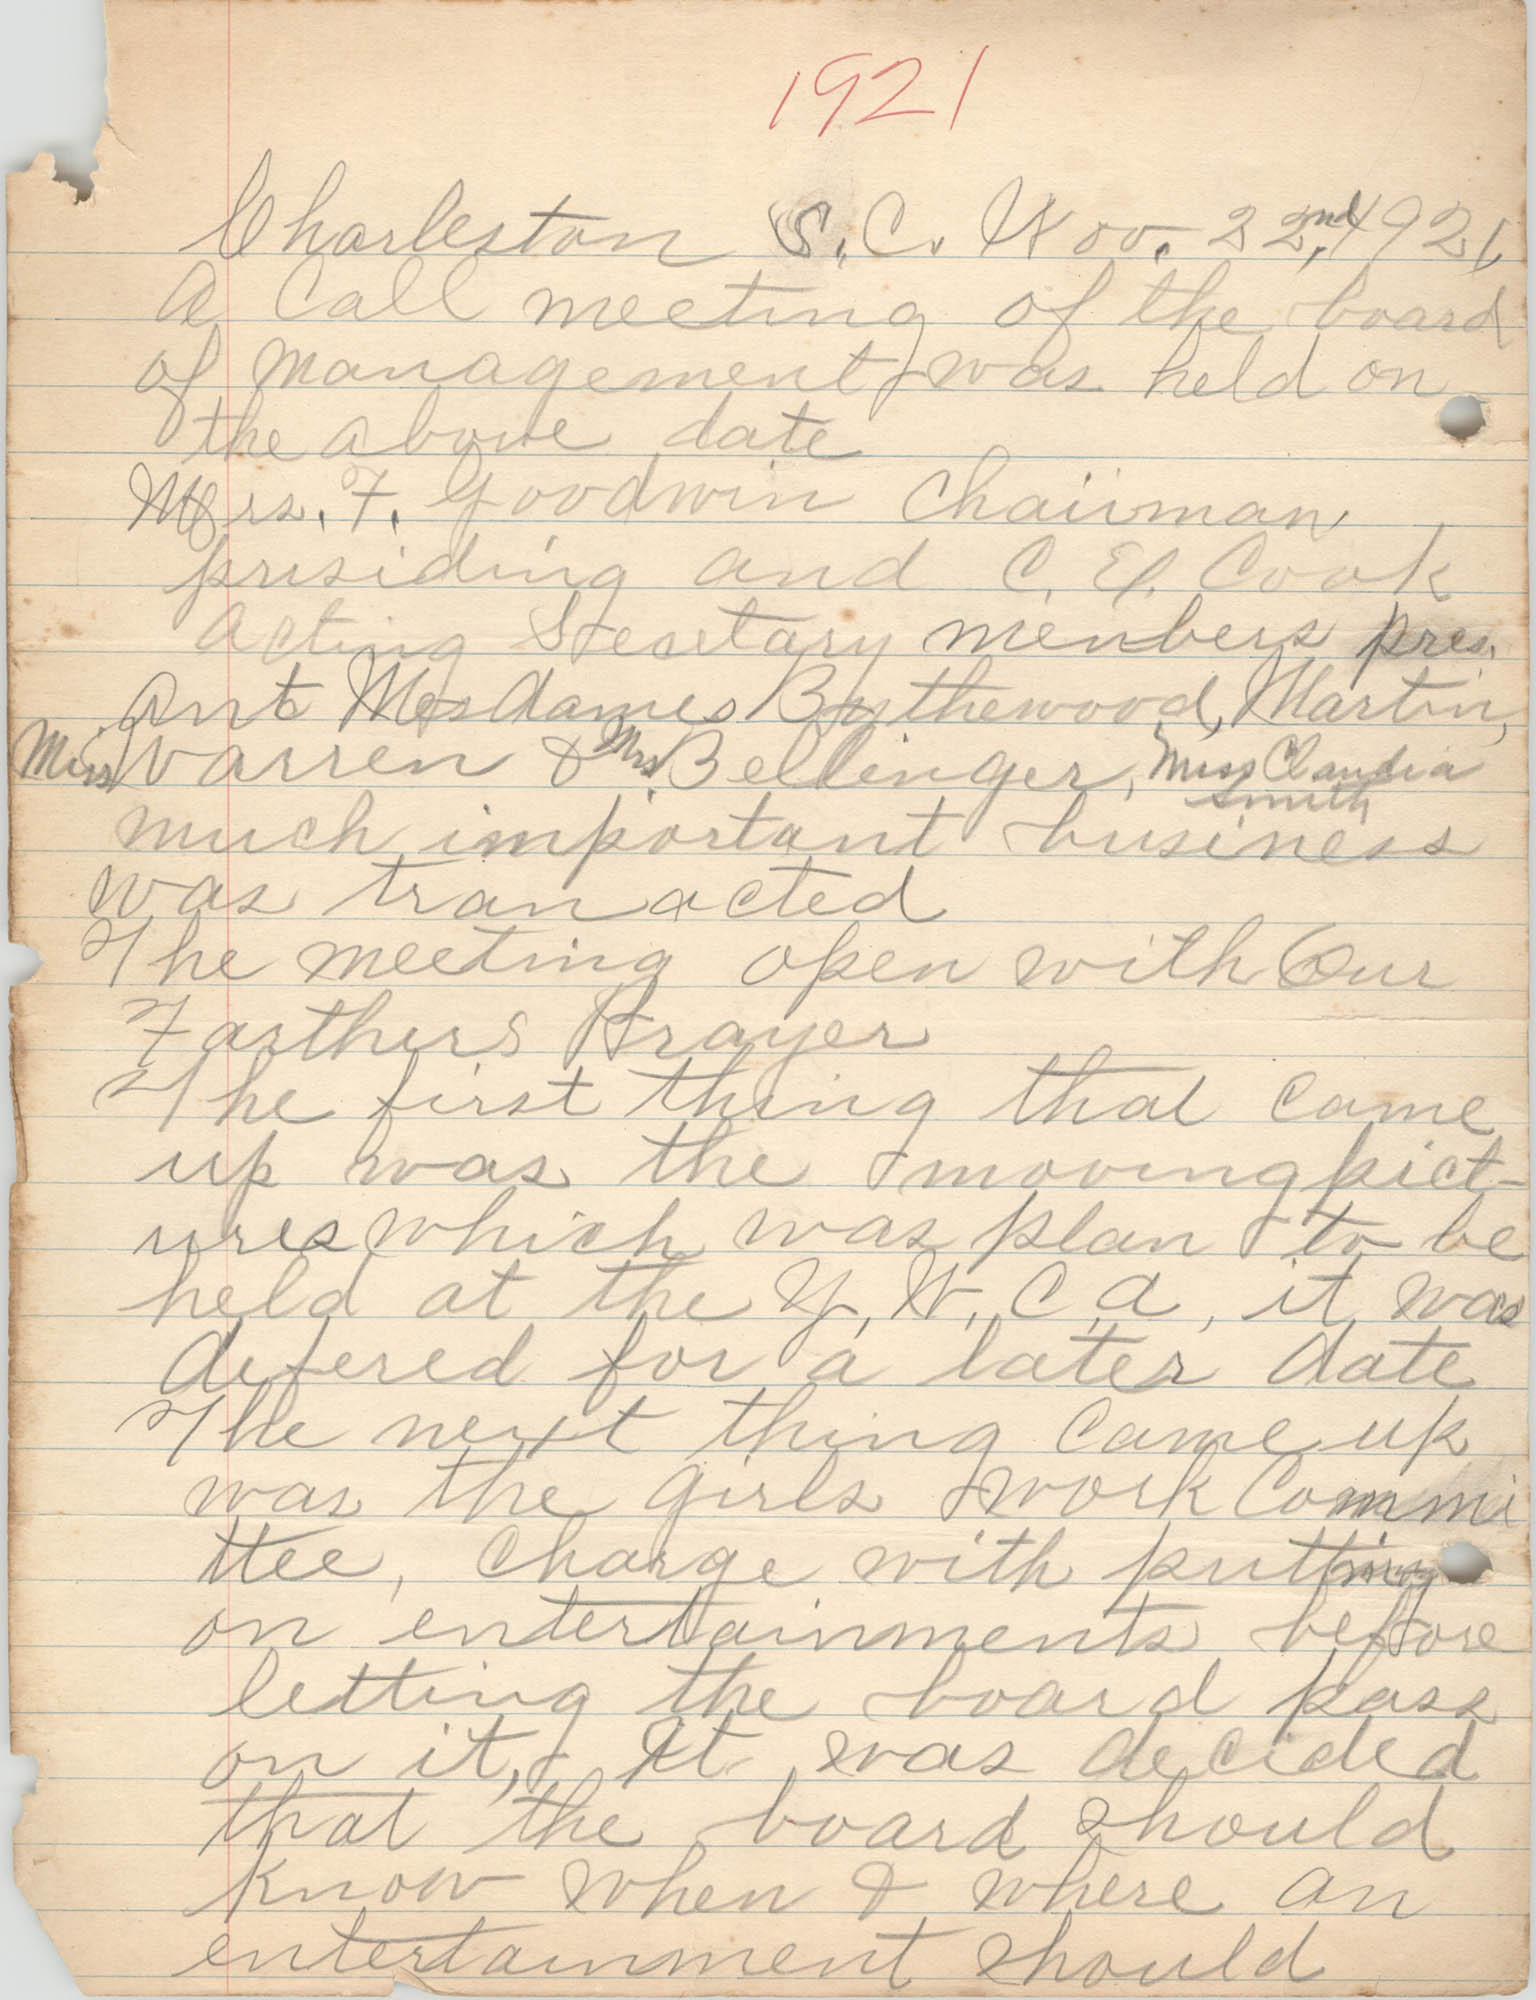 Minutes, Coming Street Y.W.C.A., November 22, 1921